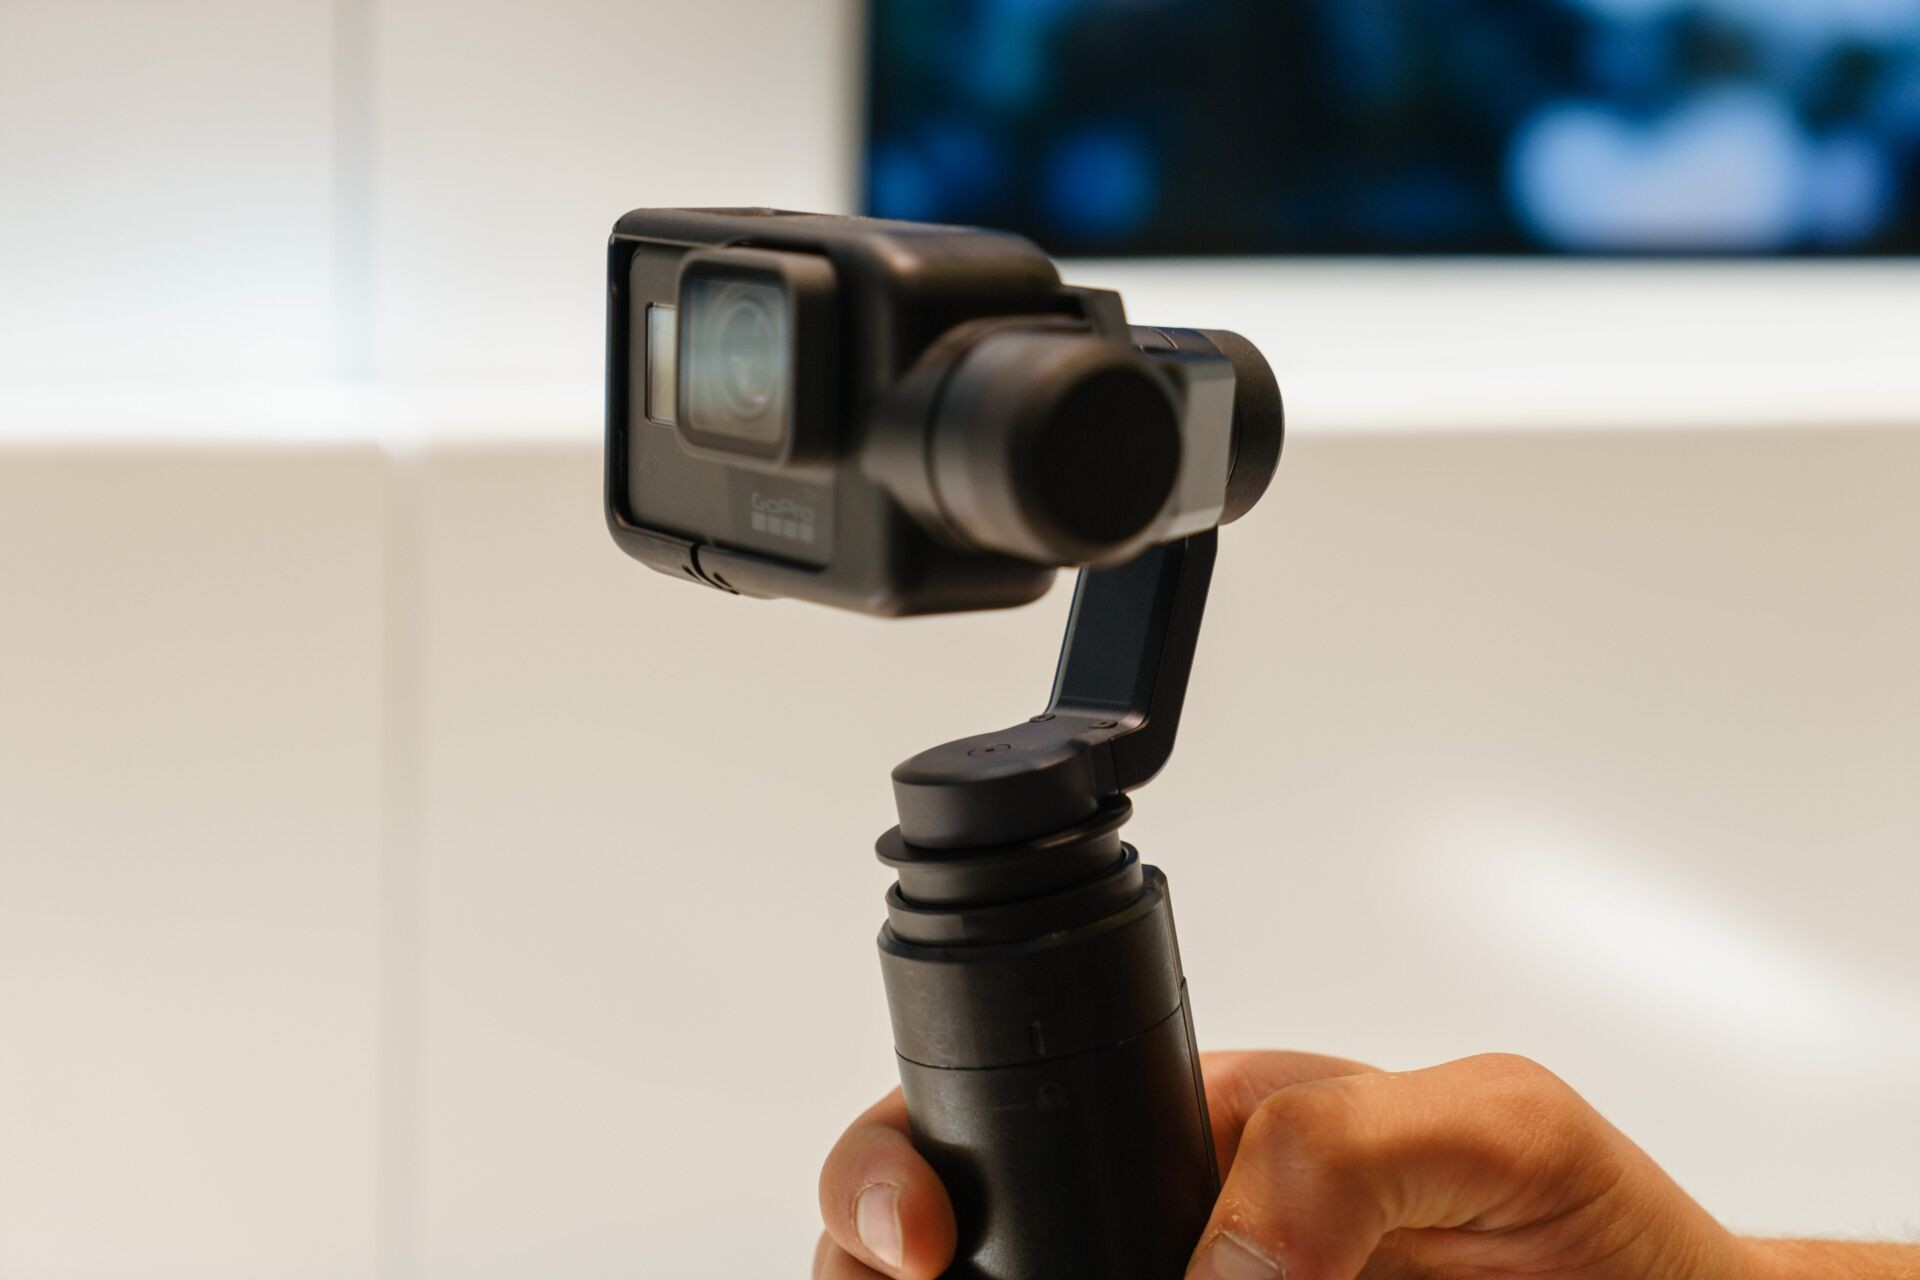 The Karma's 3-axis gimbal is removable and can be mounted on the included grip to be used hand-held.